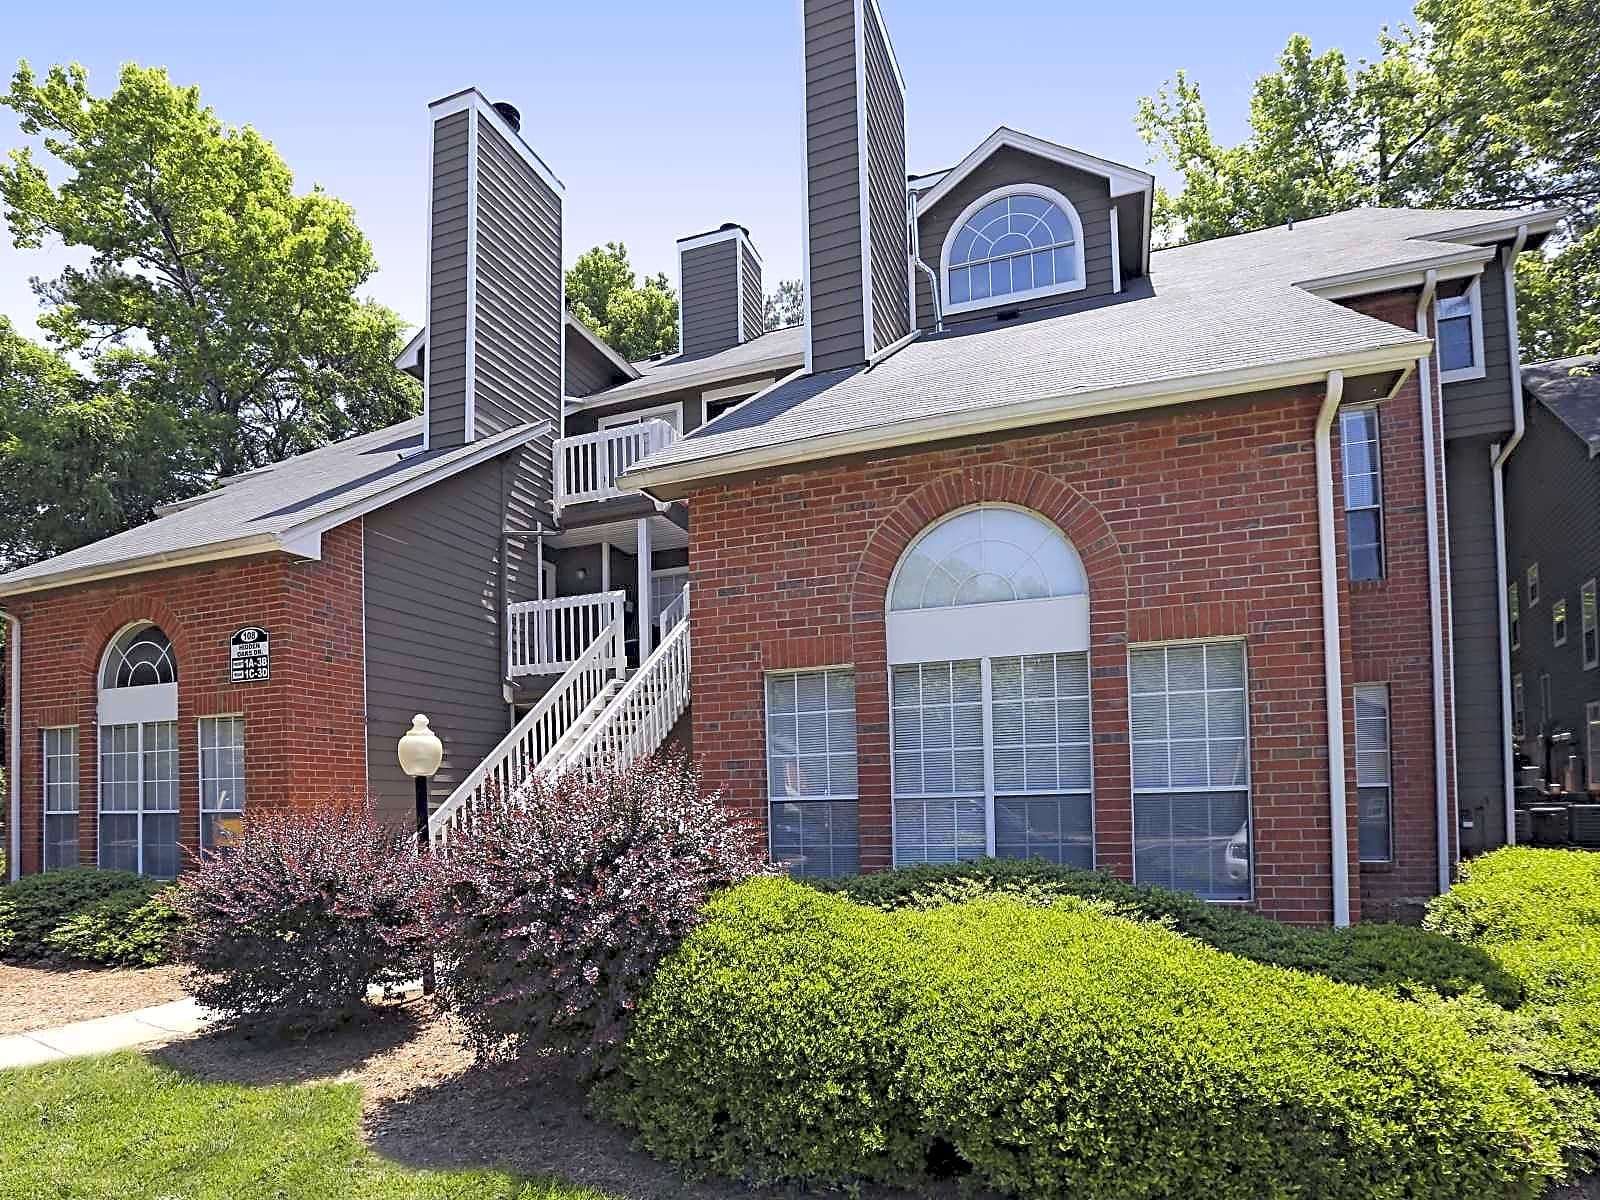 Photo: Cary Apartment for Rent - $735.00 / month; 1 Bd & 1 Ba